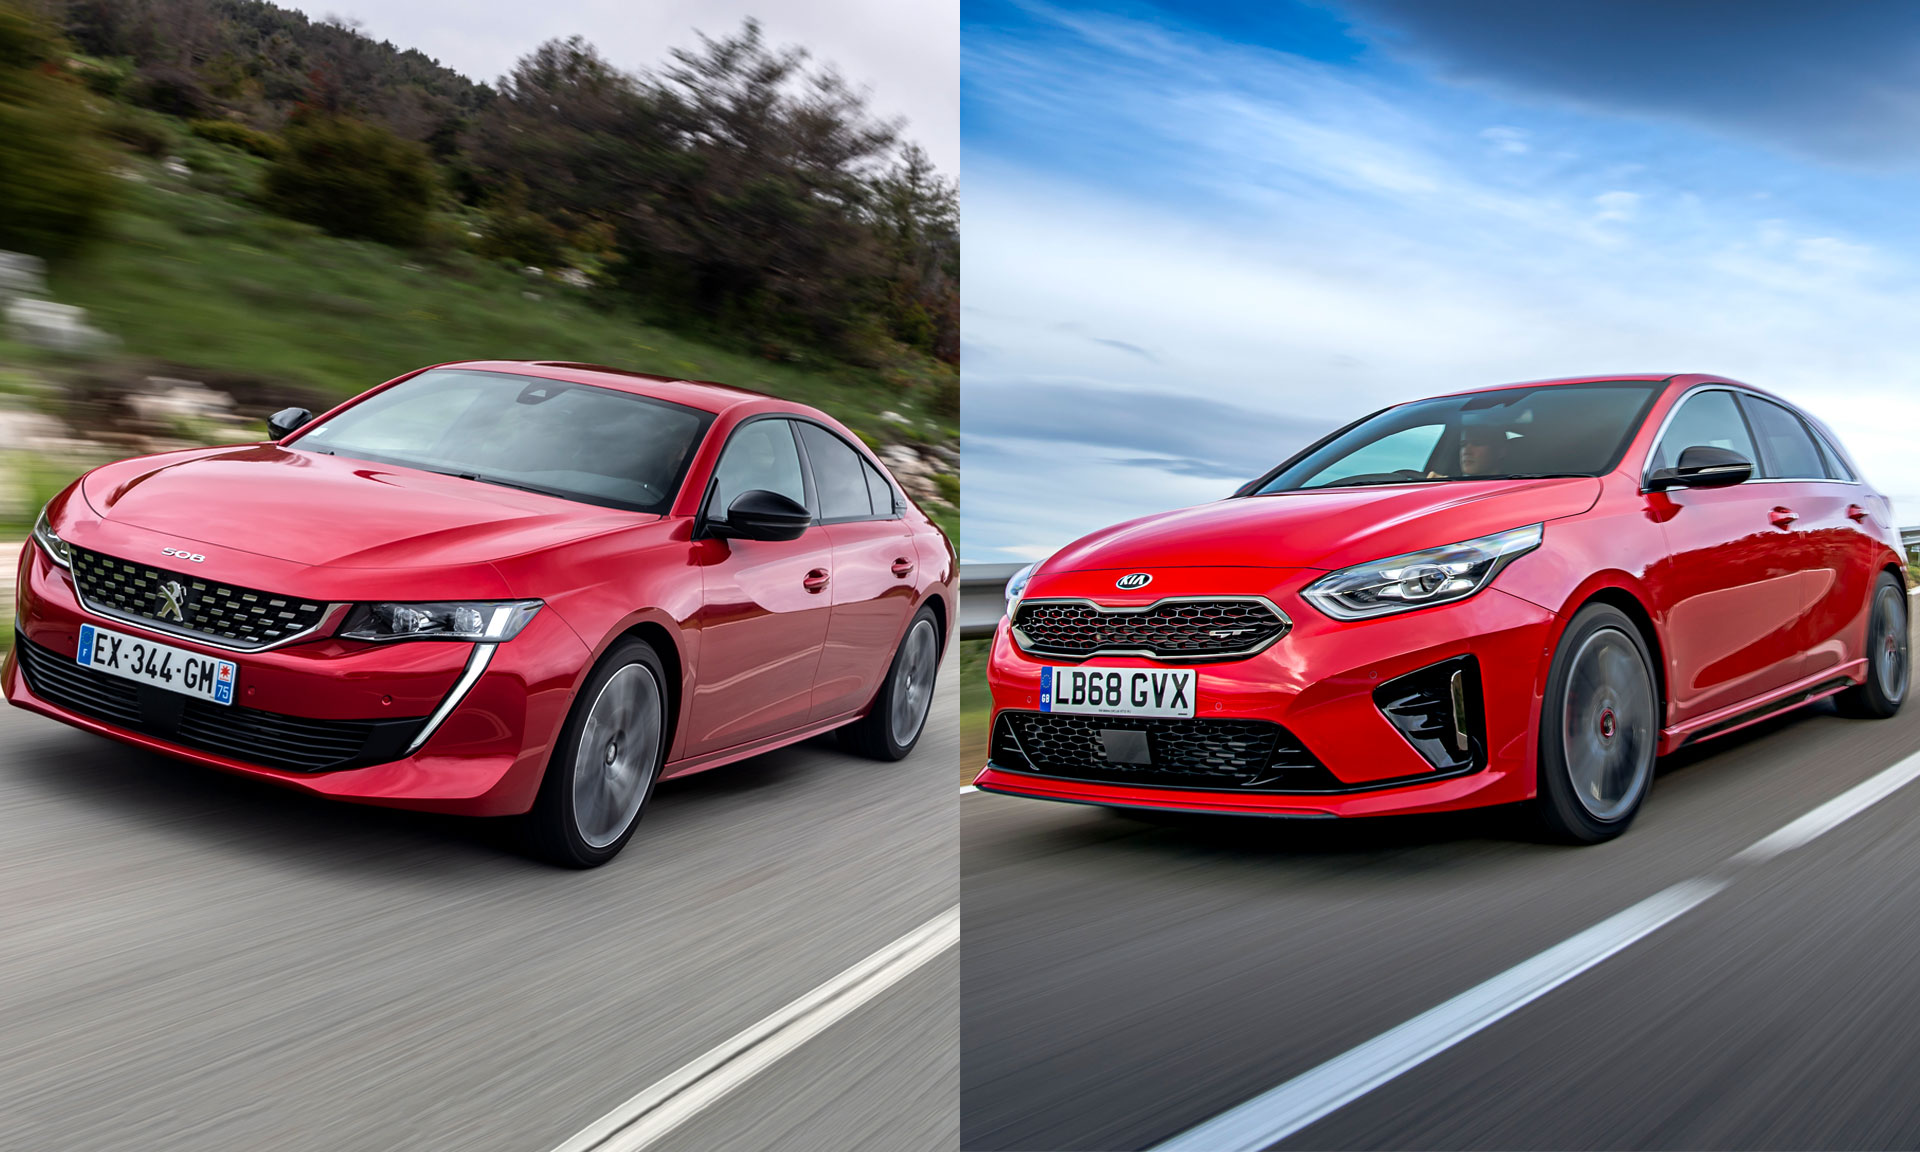 family cars tested: should you get a petrol, diesel or hybrid? – which